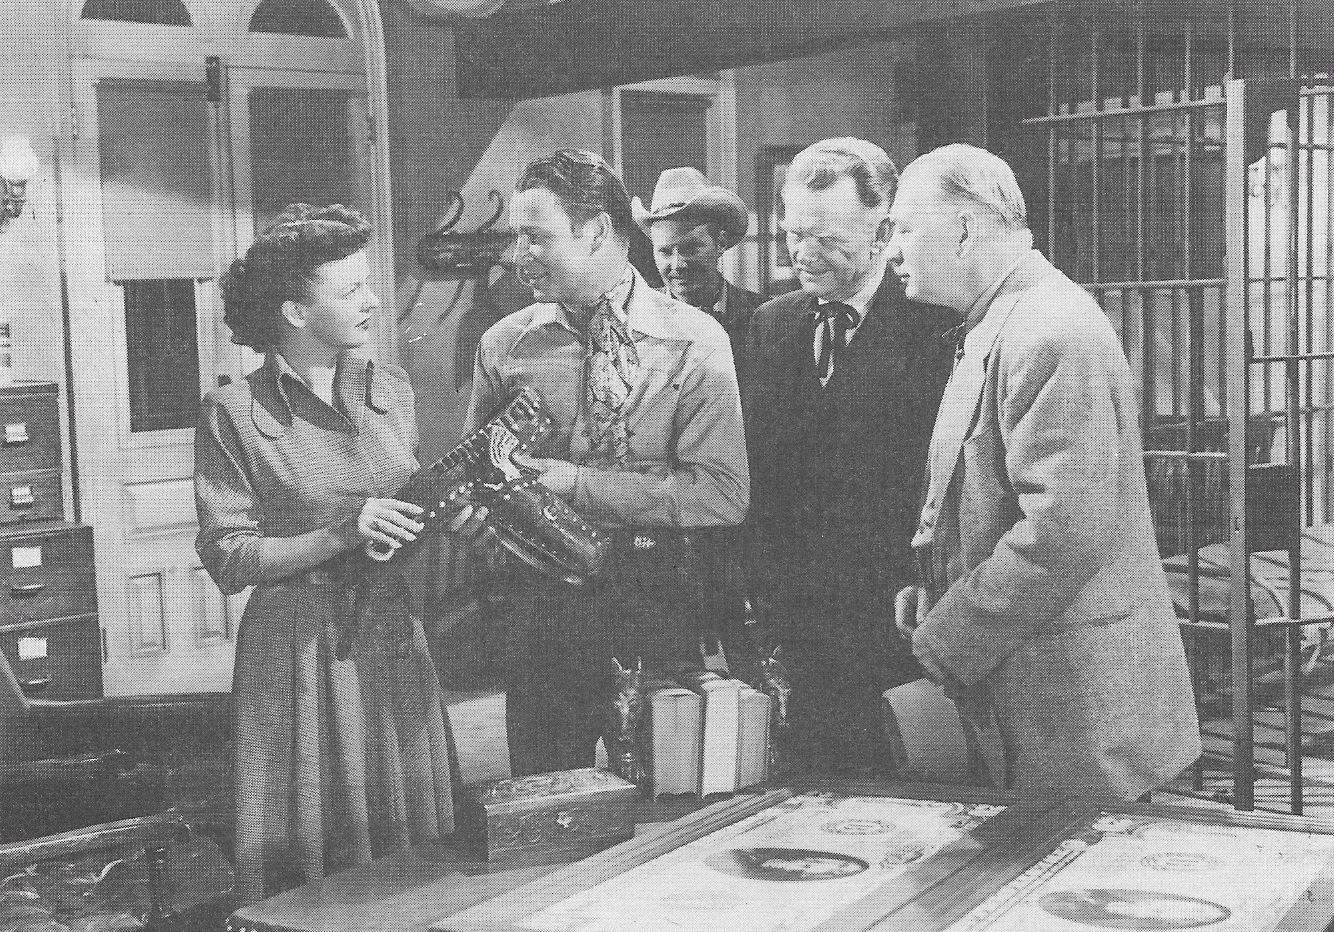 Roy Rogers, Pat Brady, Dale Evans, Edward Keane, and Harry Strang in Twilight in the Sierras (1950)